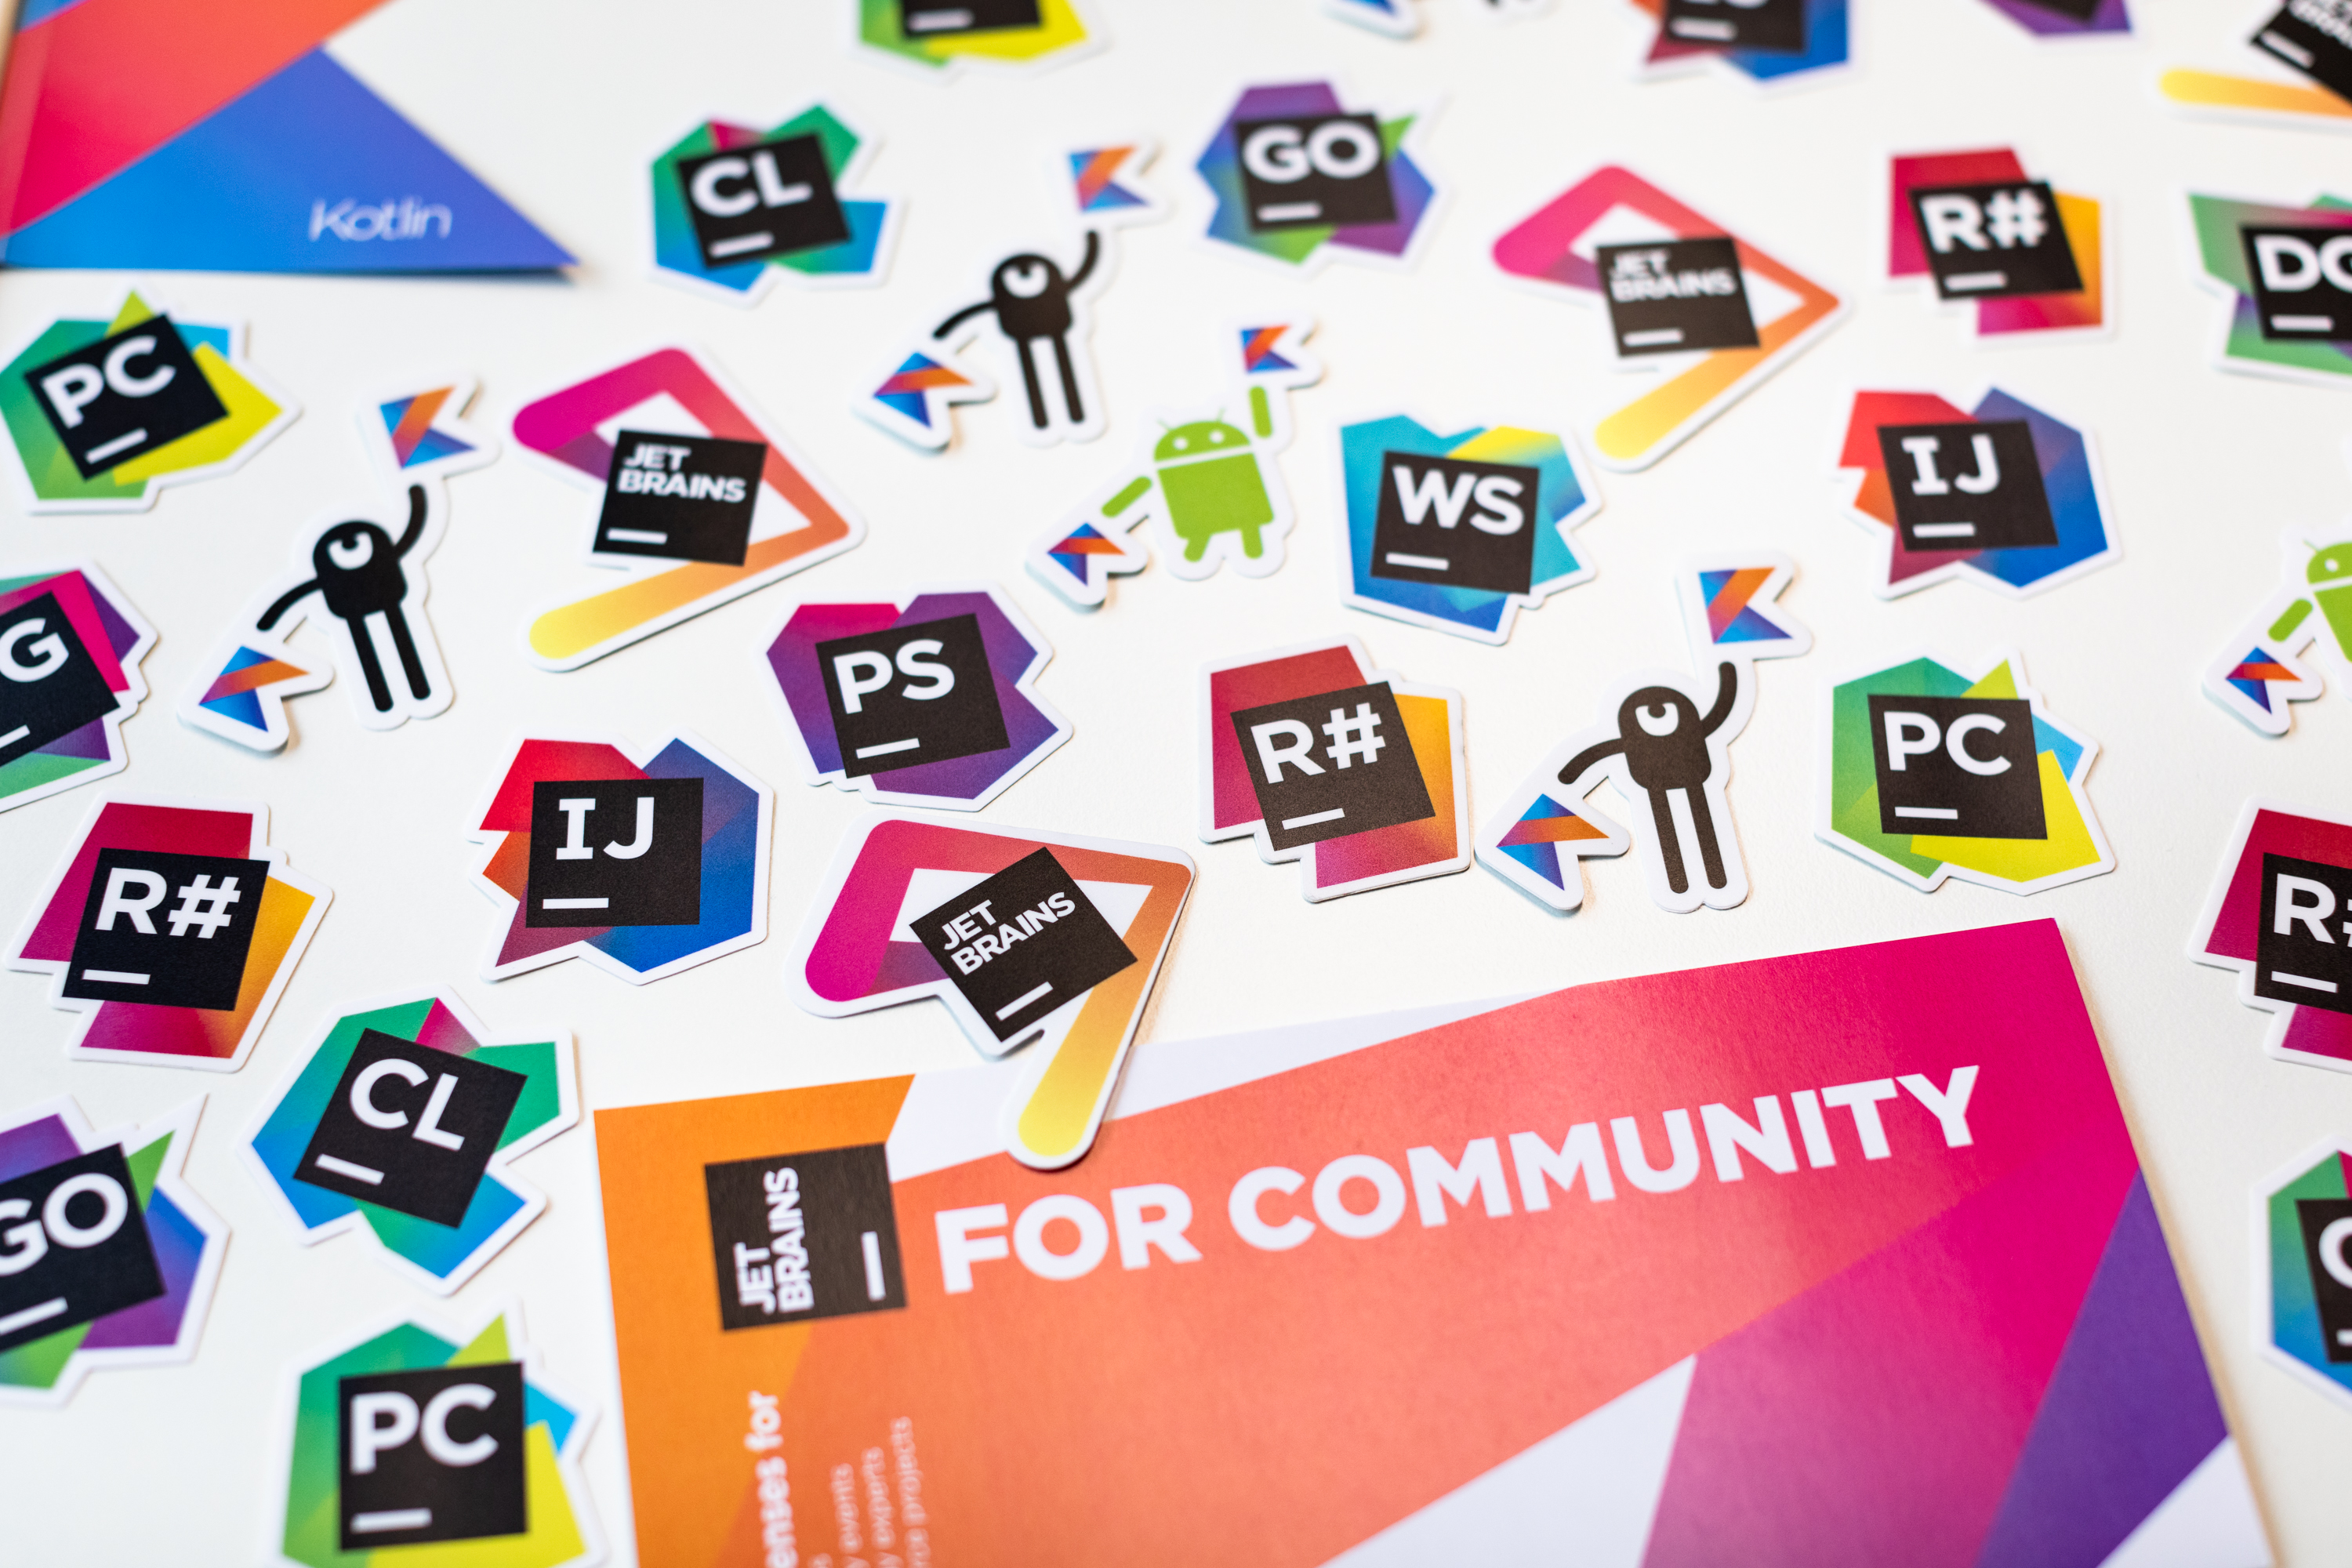 JetBrains Community